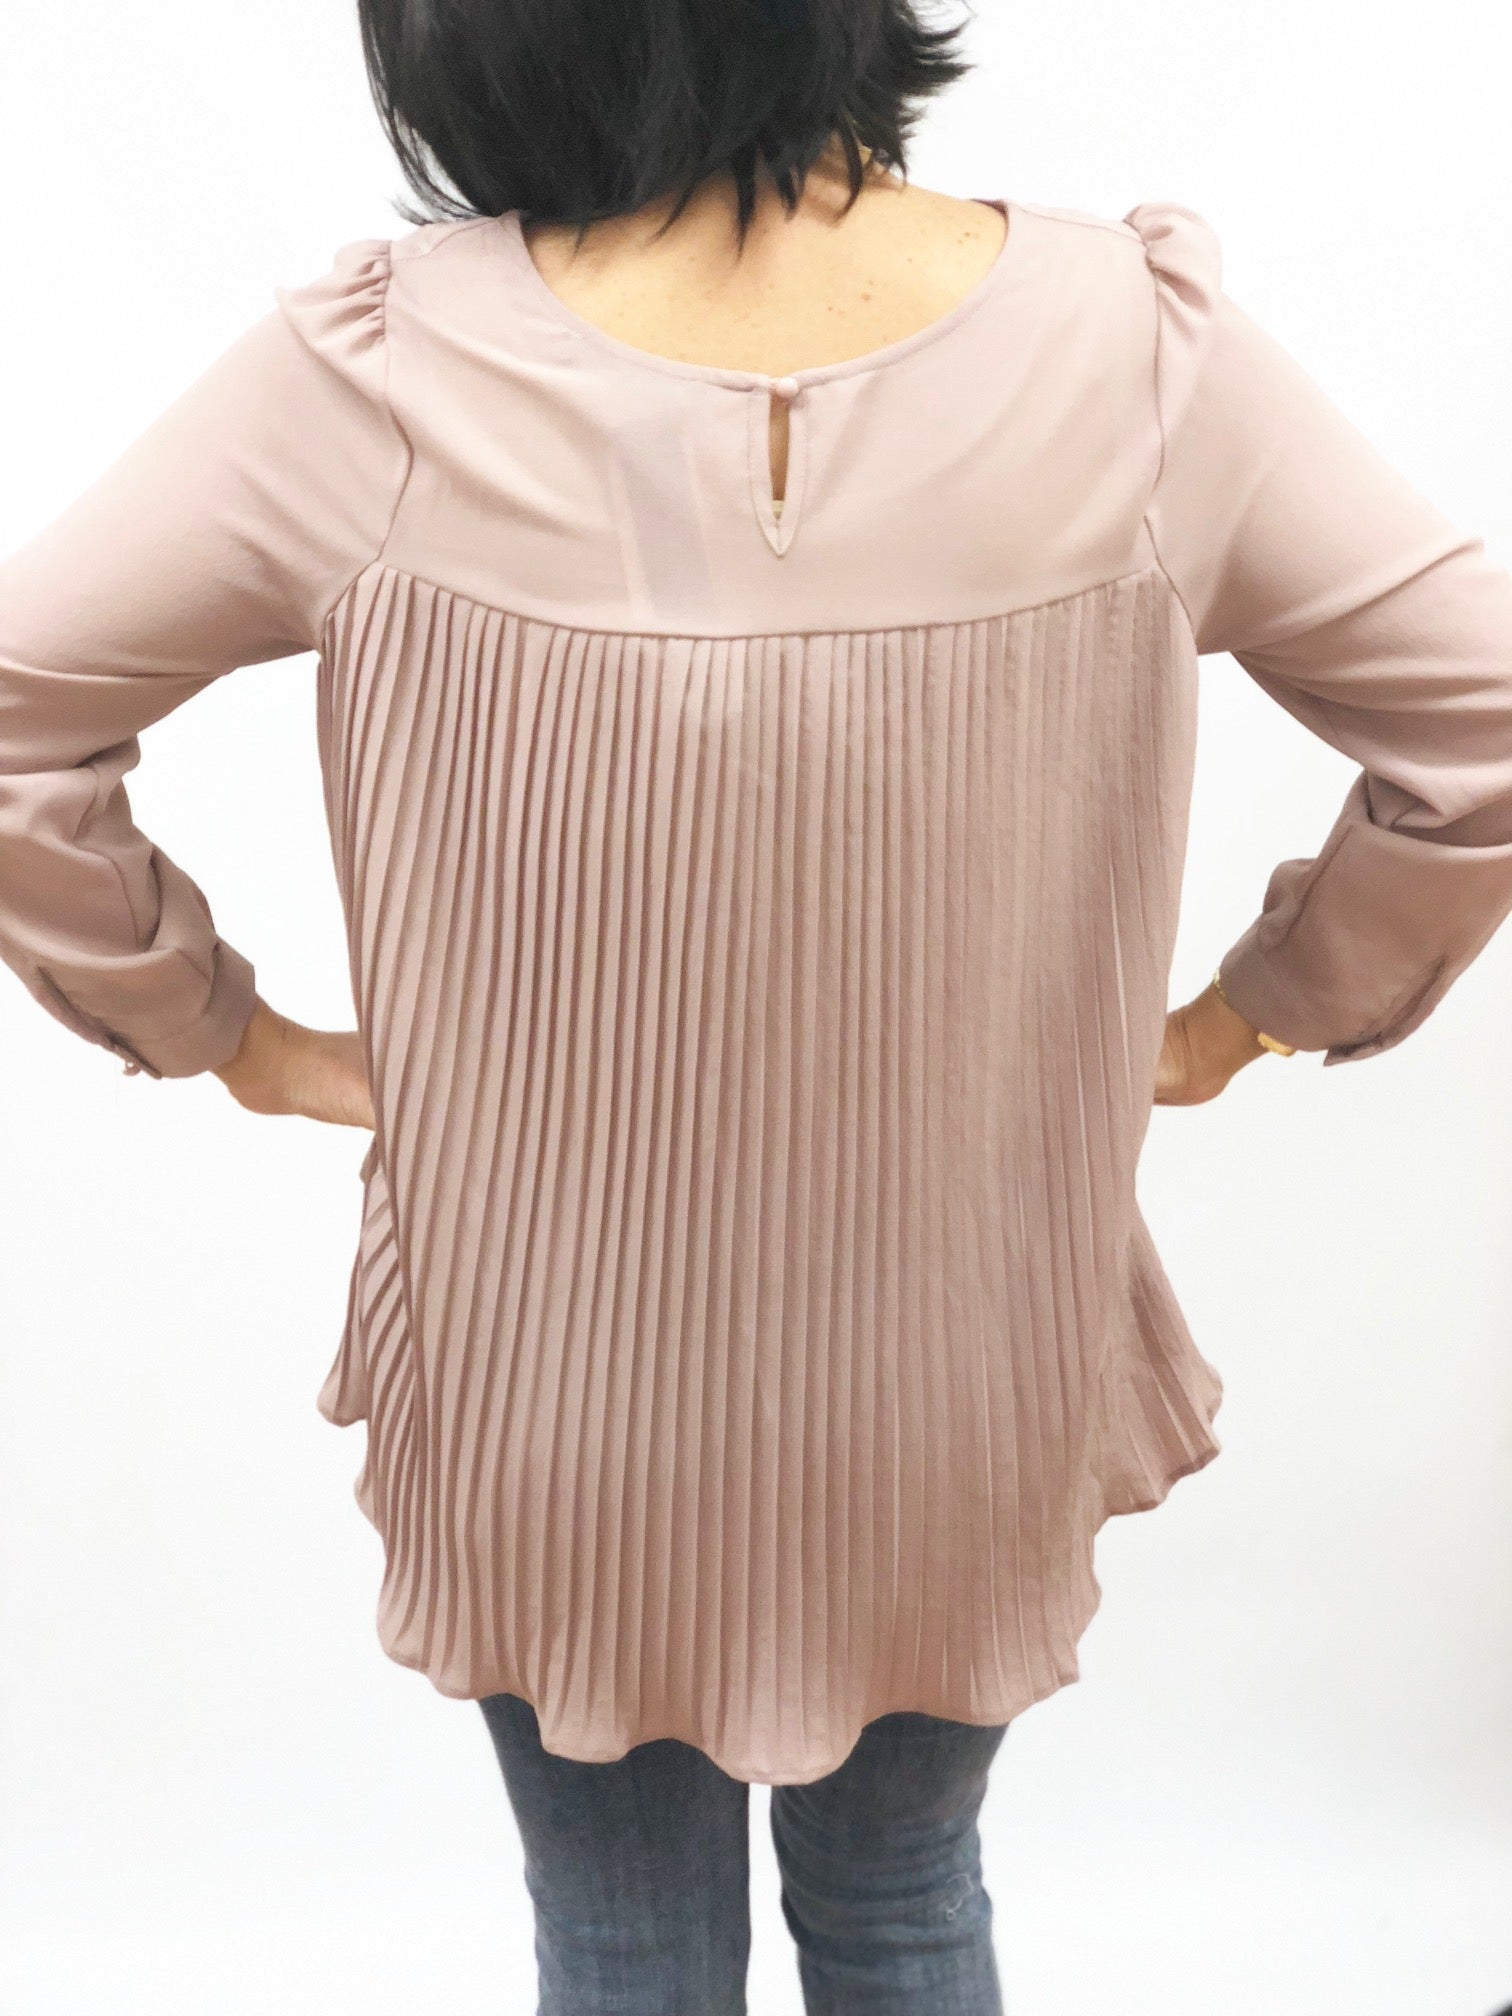 womens long sleeve blouse pleated detail in back high lo hem red black or blush